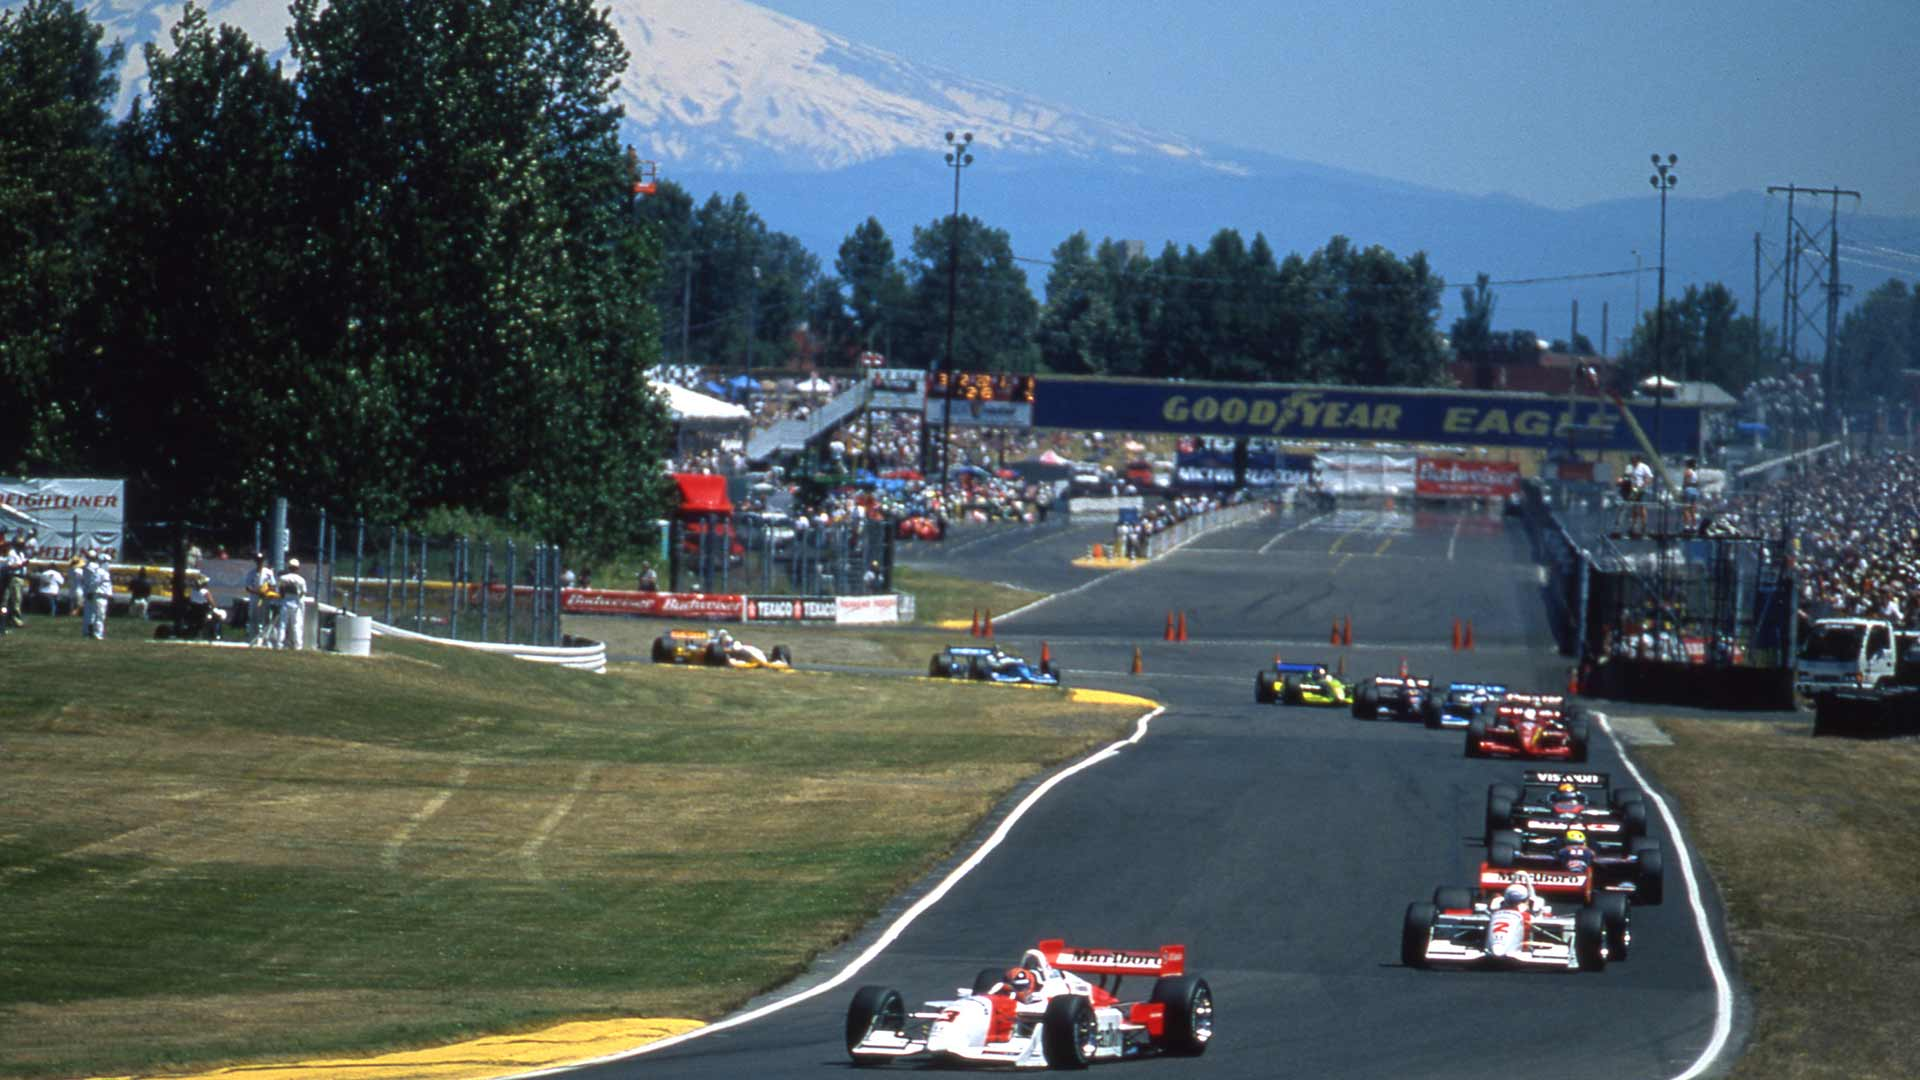 A throwback to the Grand Prix of Portland from 2000